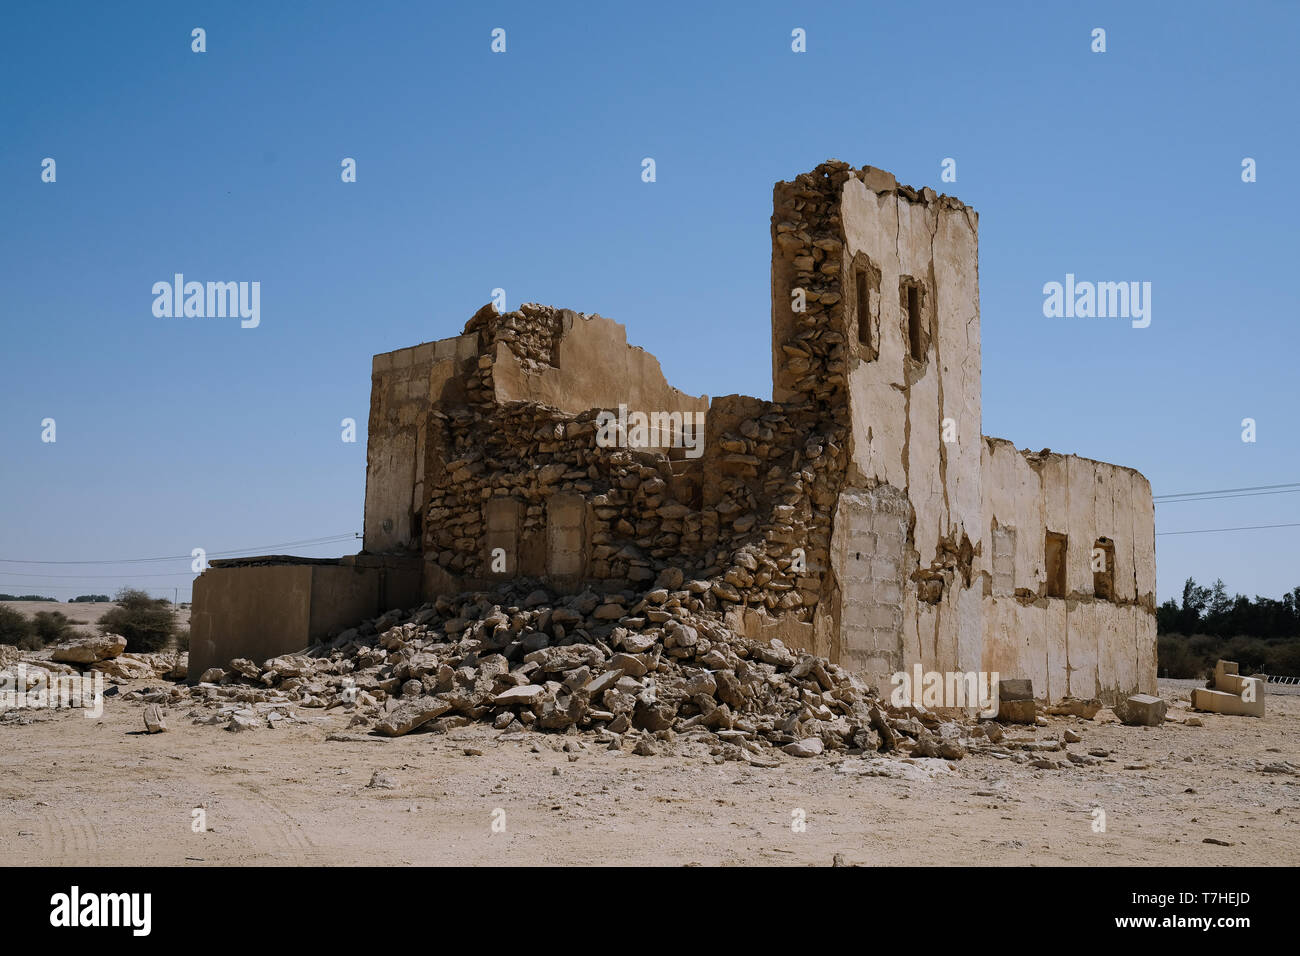 Ruins of an old building on an unmarked road near the Dahl Al Misfir caves in Qatar. - Stock Image